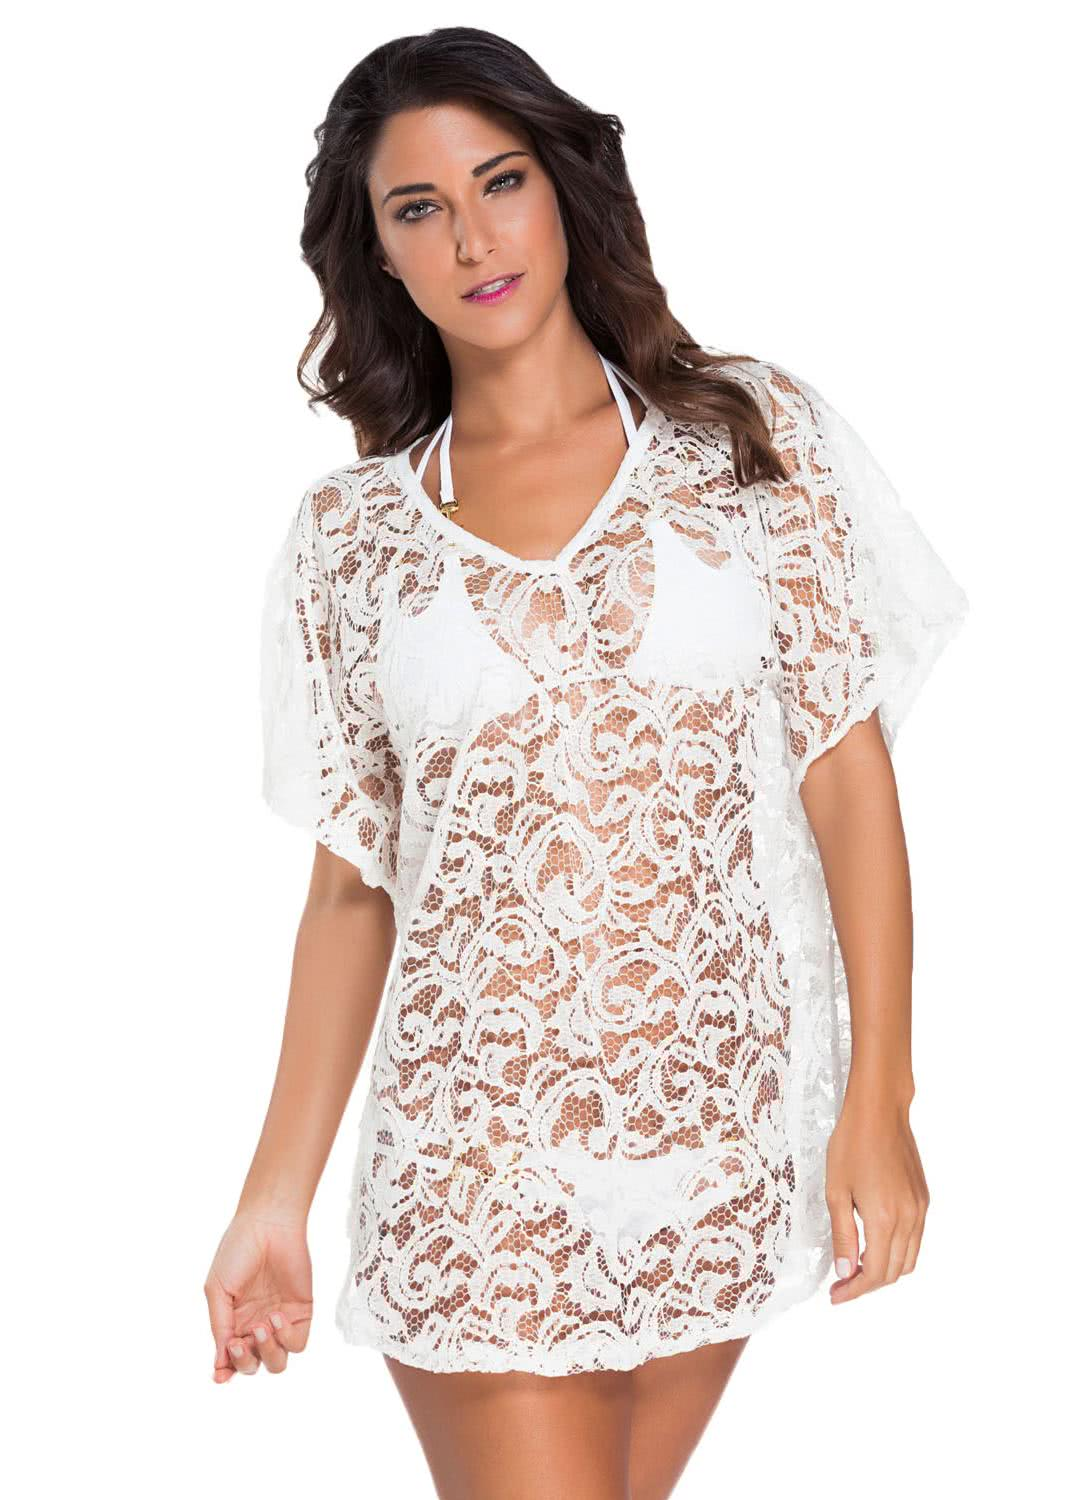 Lace Up Neck Embellished Kaftan, in a vibrant rose color. Soft, silky, the perfect beach cover up.-Digital Printed Front Embellished Kaftan%Silk, 45%Polyester.